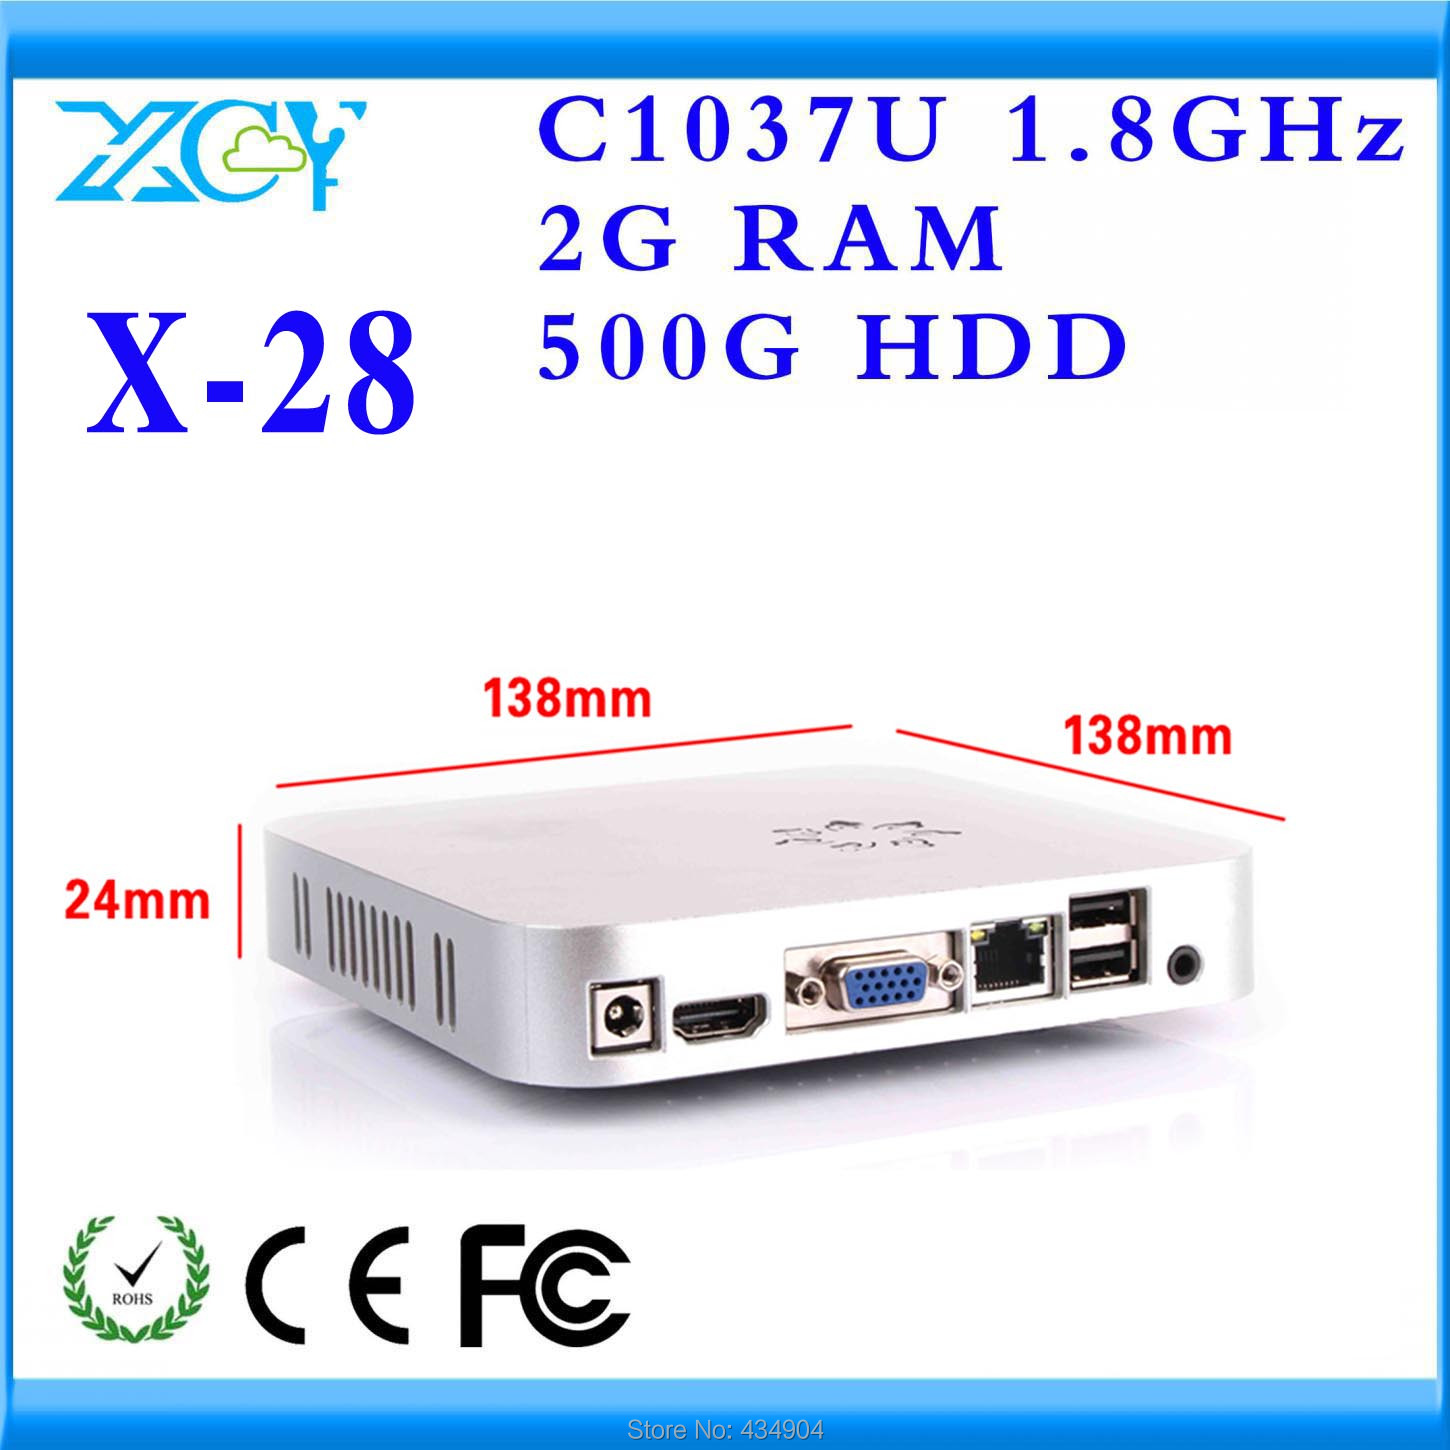 tiny pc mini pc cloud server X-28 c1037u 2g ram 500g HDD very small but powerfull PC support hd video(China (Mainland))